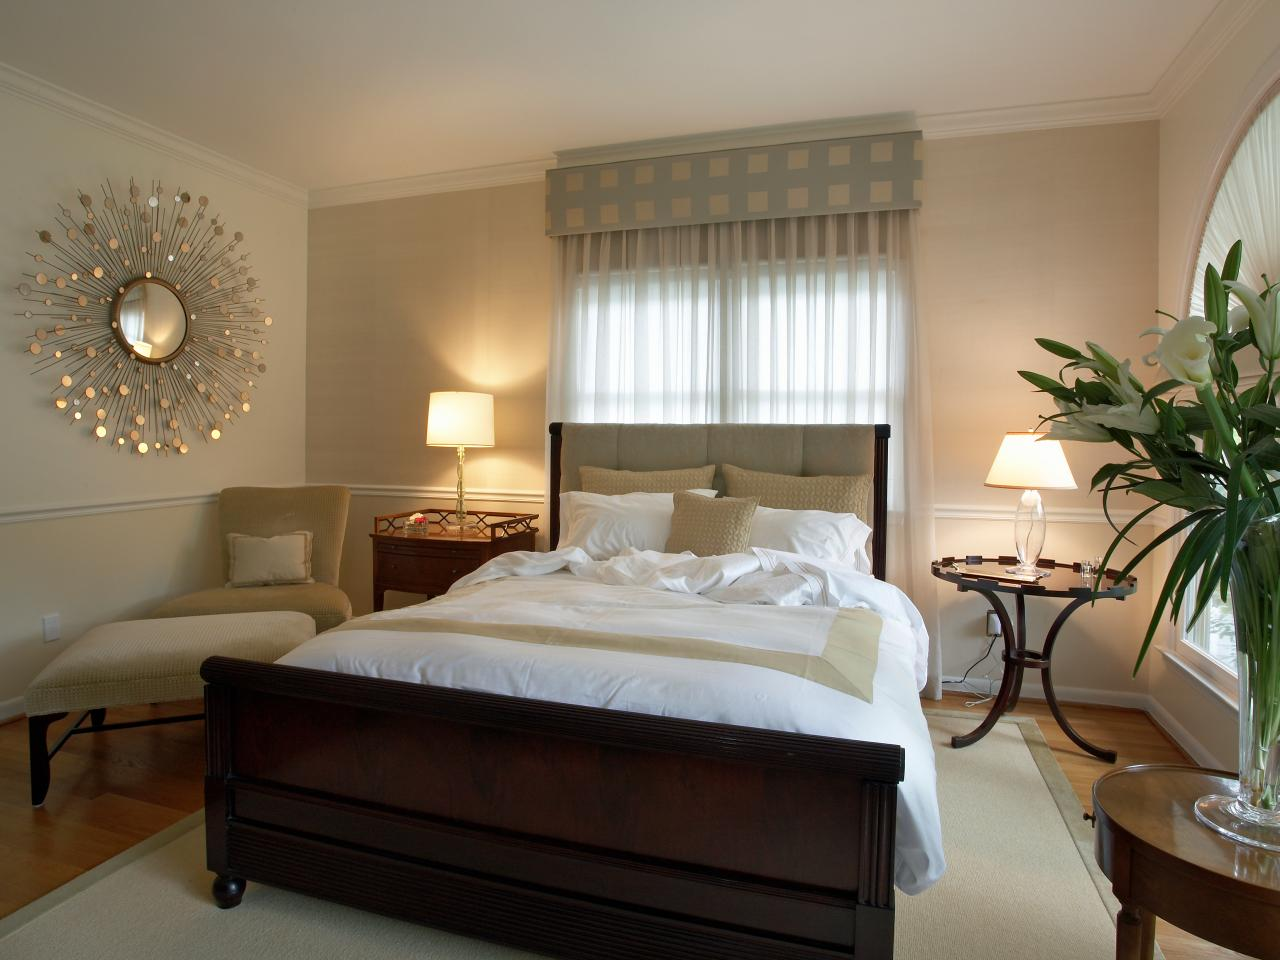 warm bedroom color schemes: pictures, options & ideas | hgtv